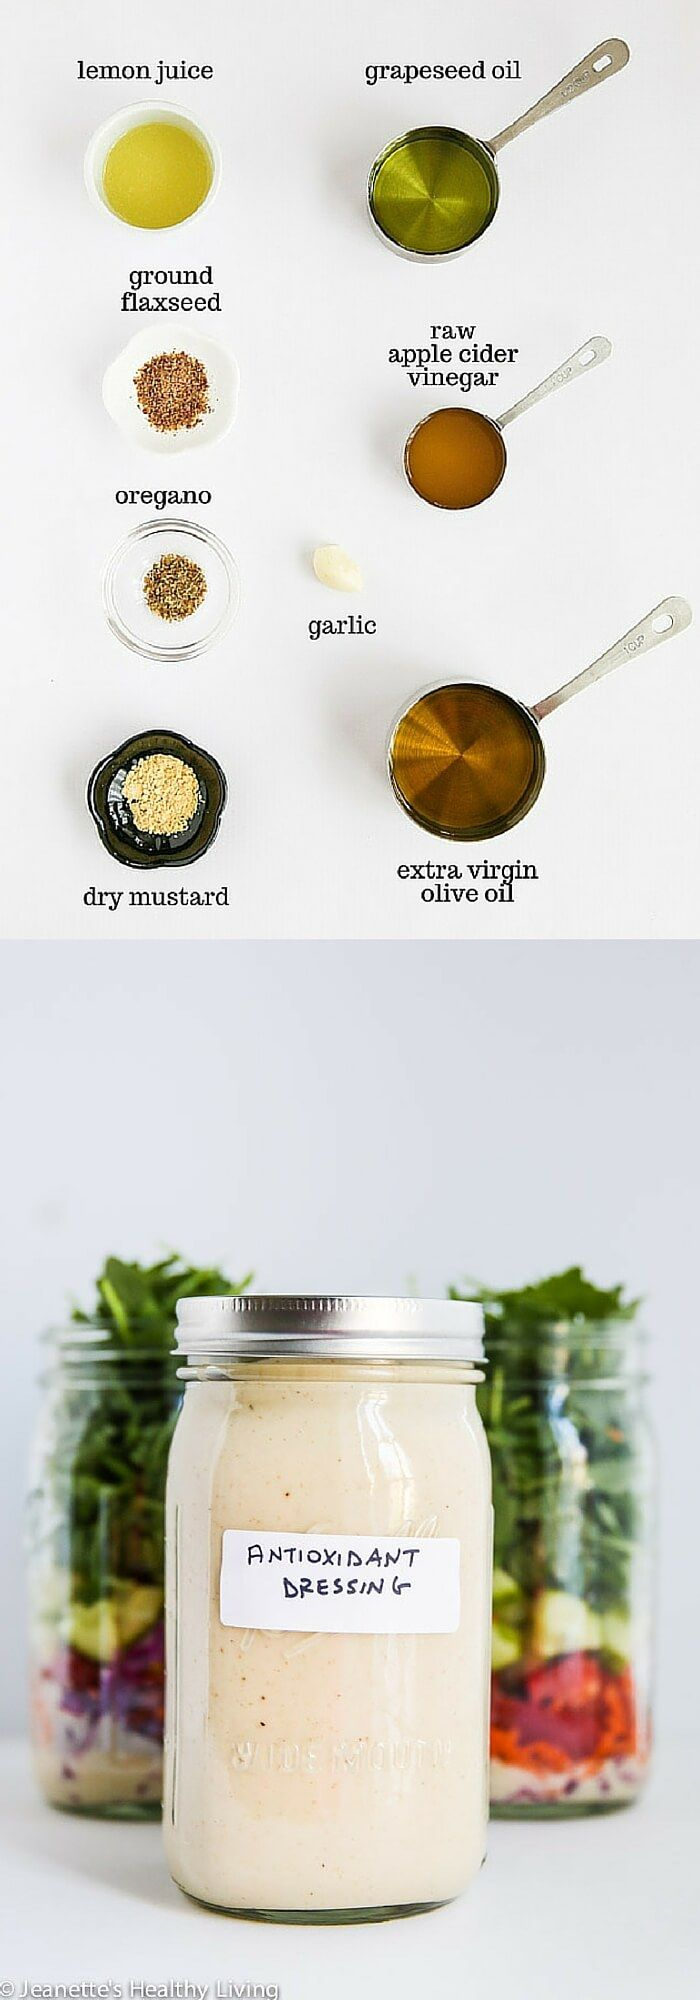 Antioxidant Salad Dressing - this is a healthy, versatile salad dressing made with ground flax seeds and raw apple cider vinegar ~ http://jeanetteshealthyliving.com